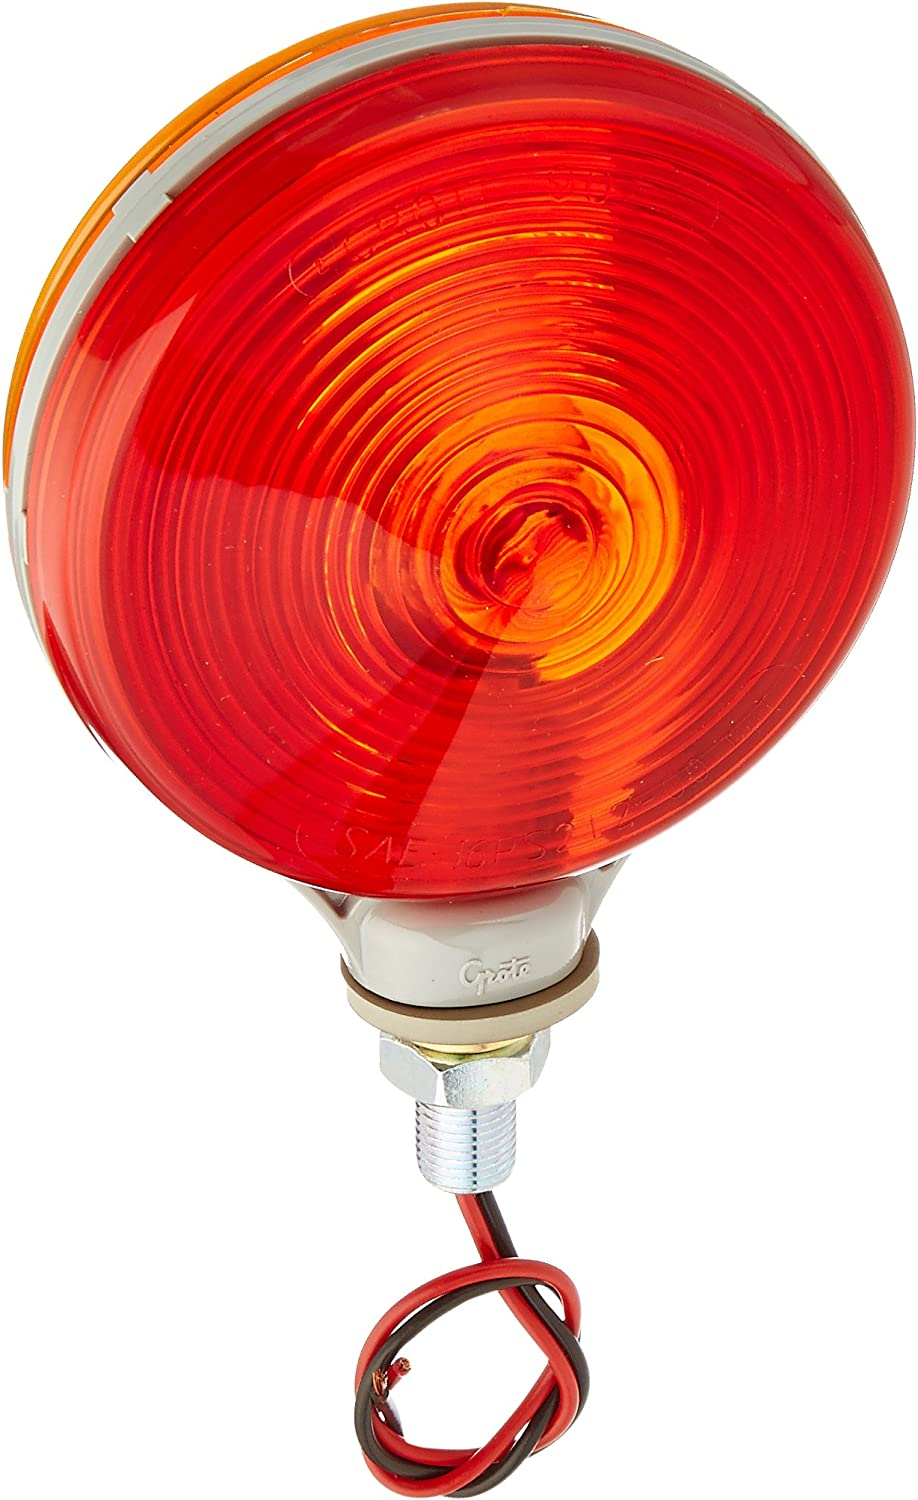 Double Contact Grote 50630 Thin-Line Double-Face Light